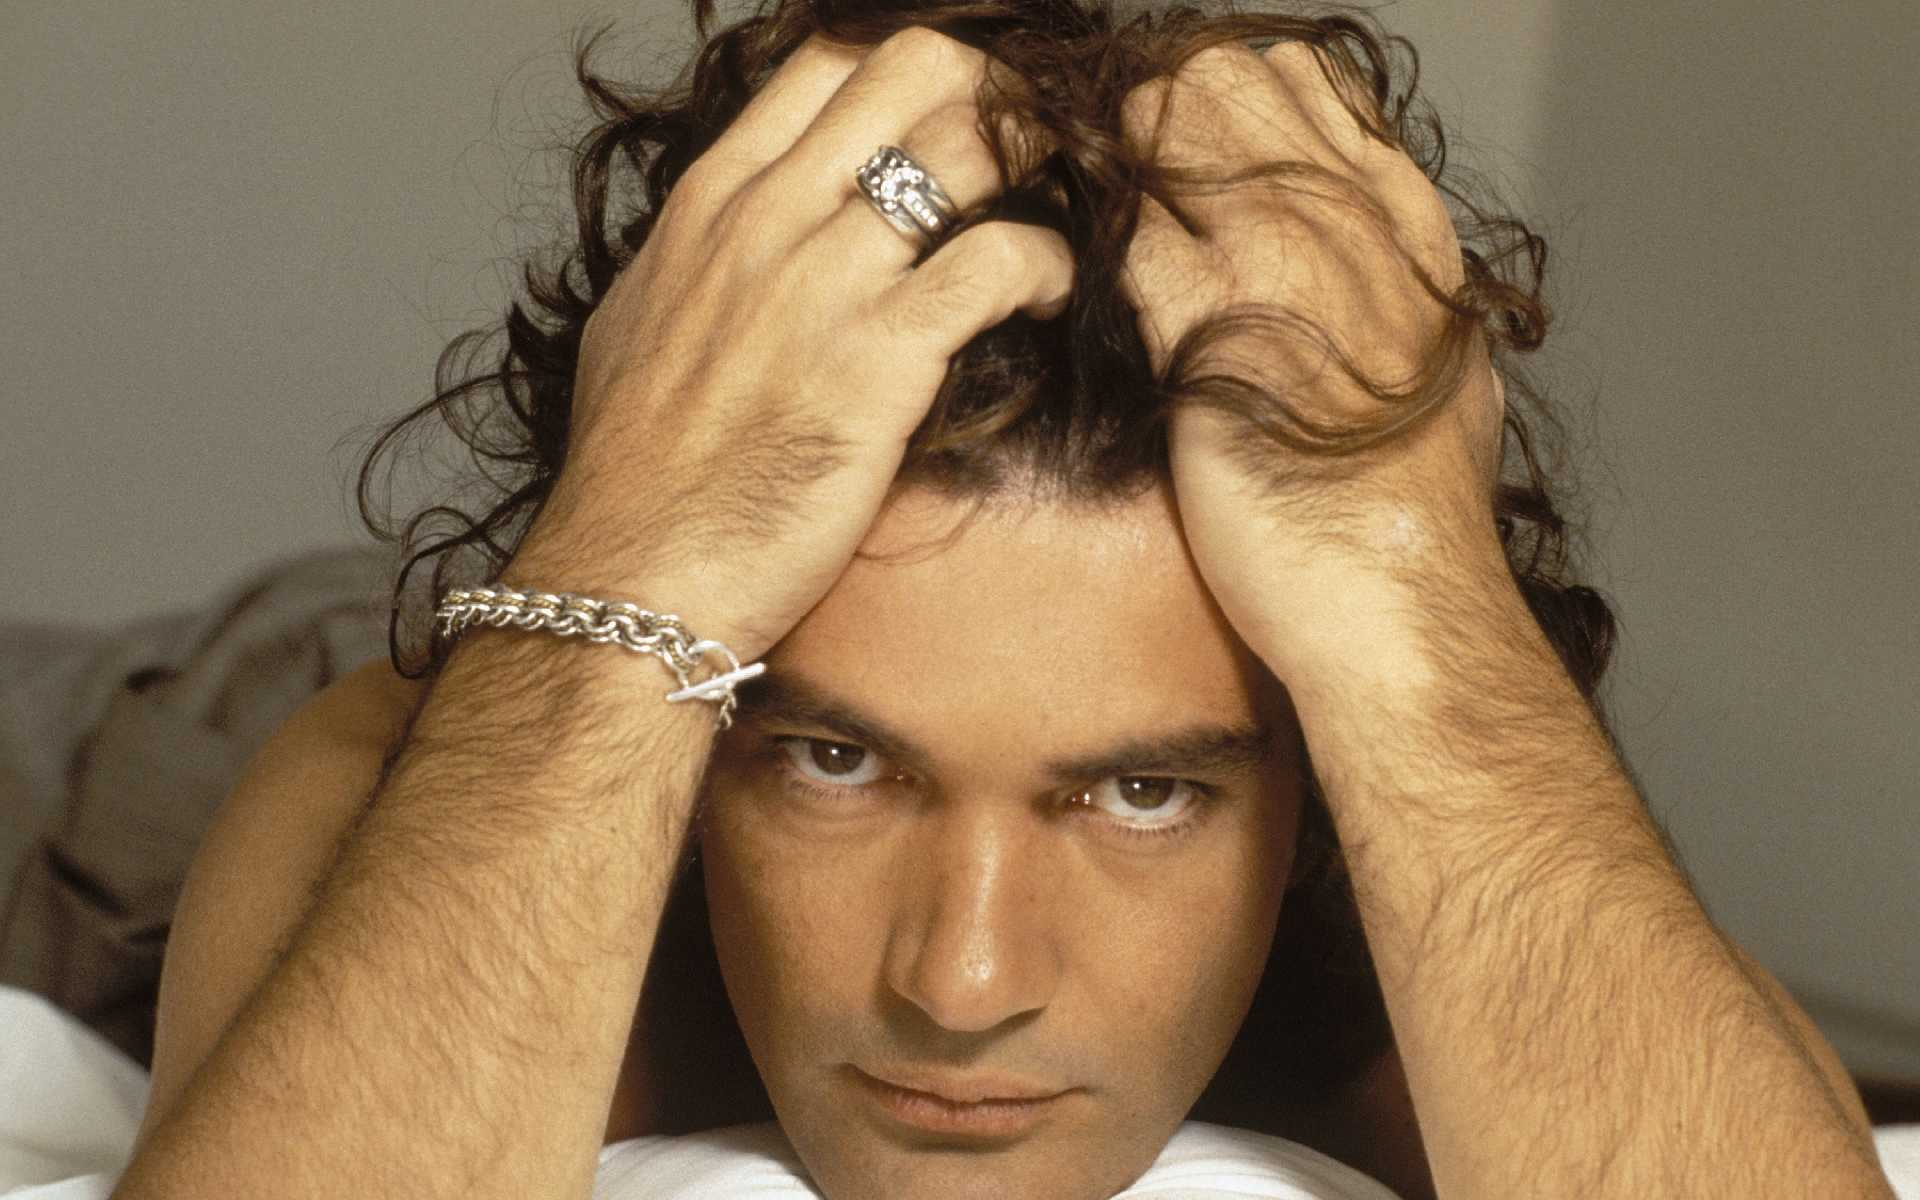 Antonio Banderas Wallpaper @ Go4Celebrity.com